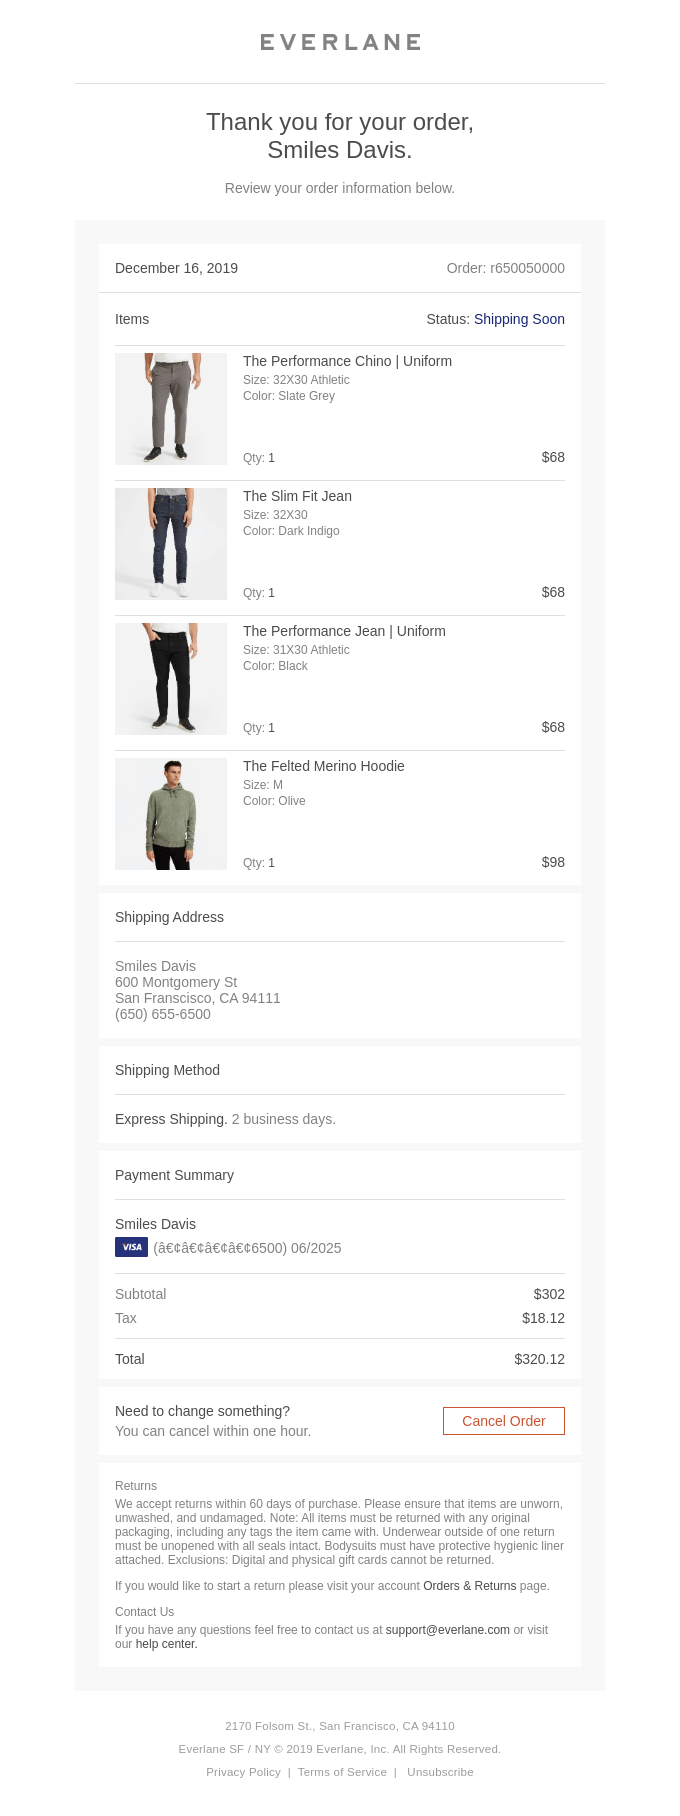 Your Everlane order